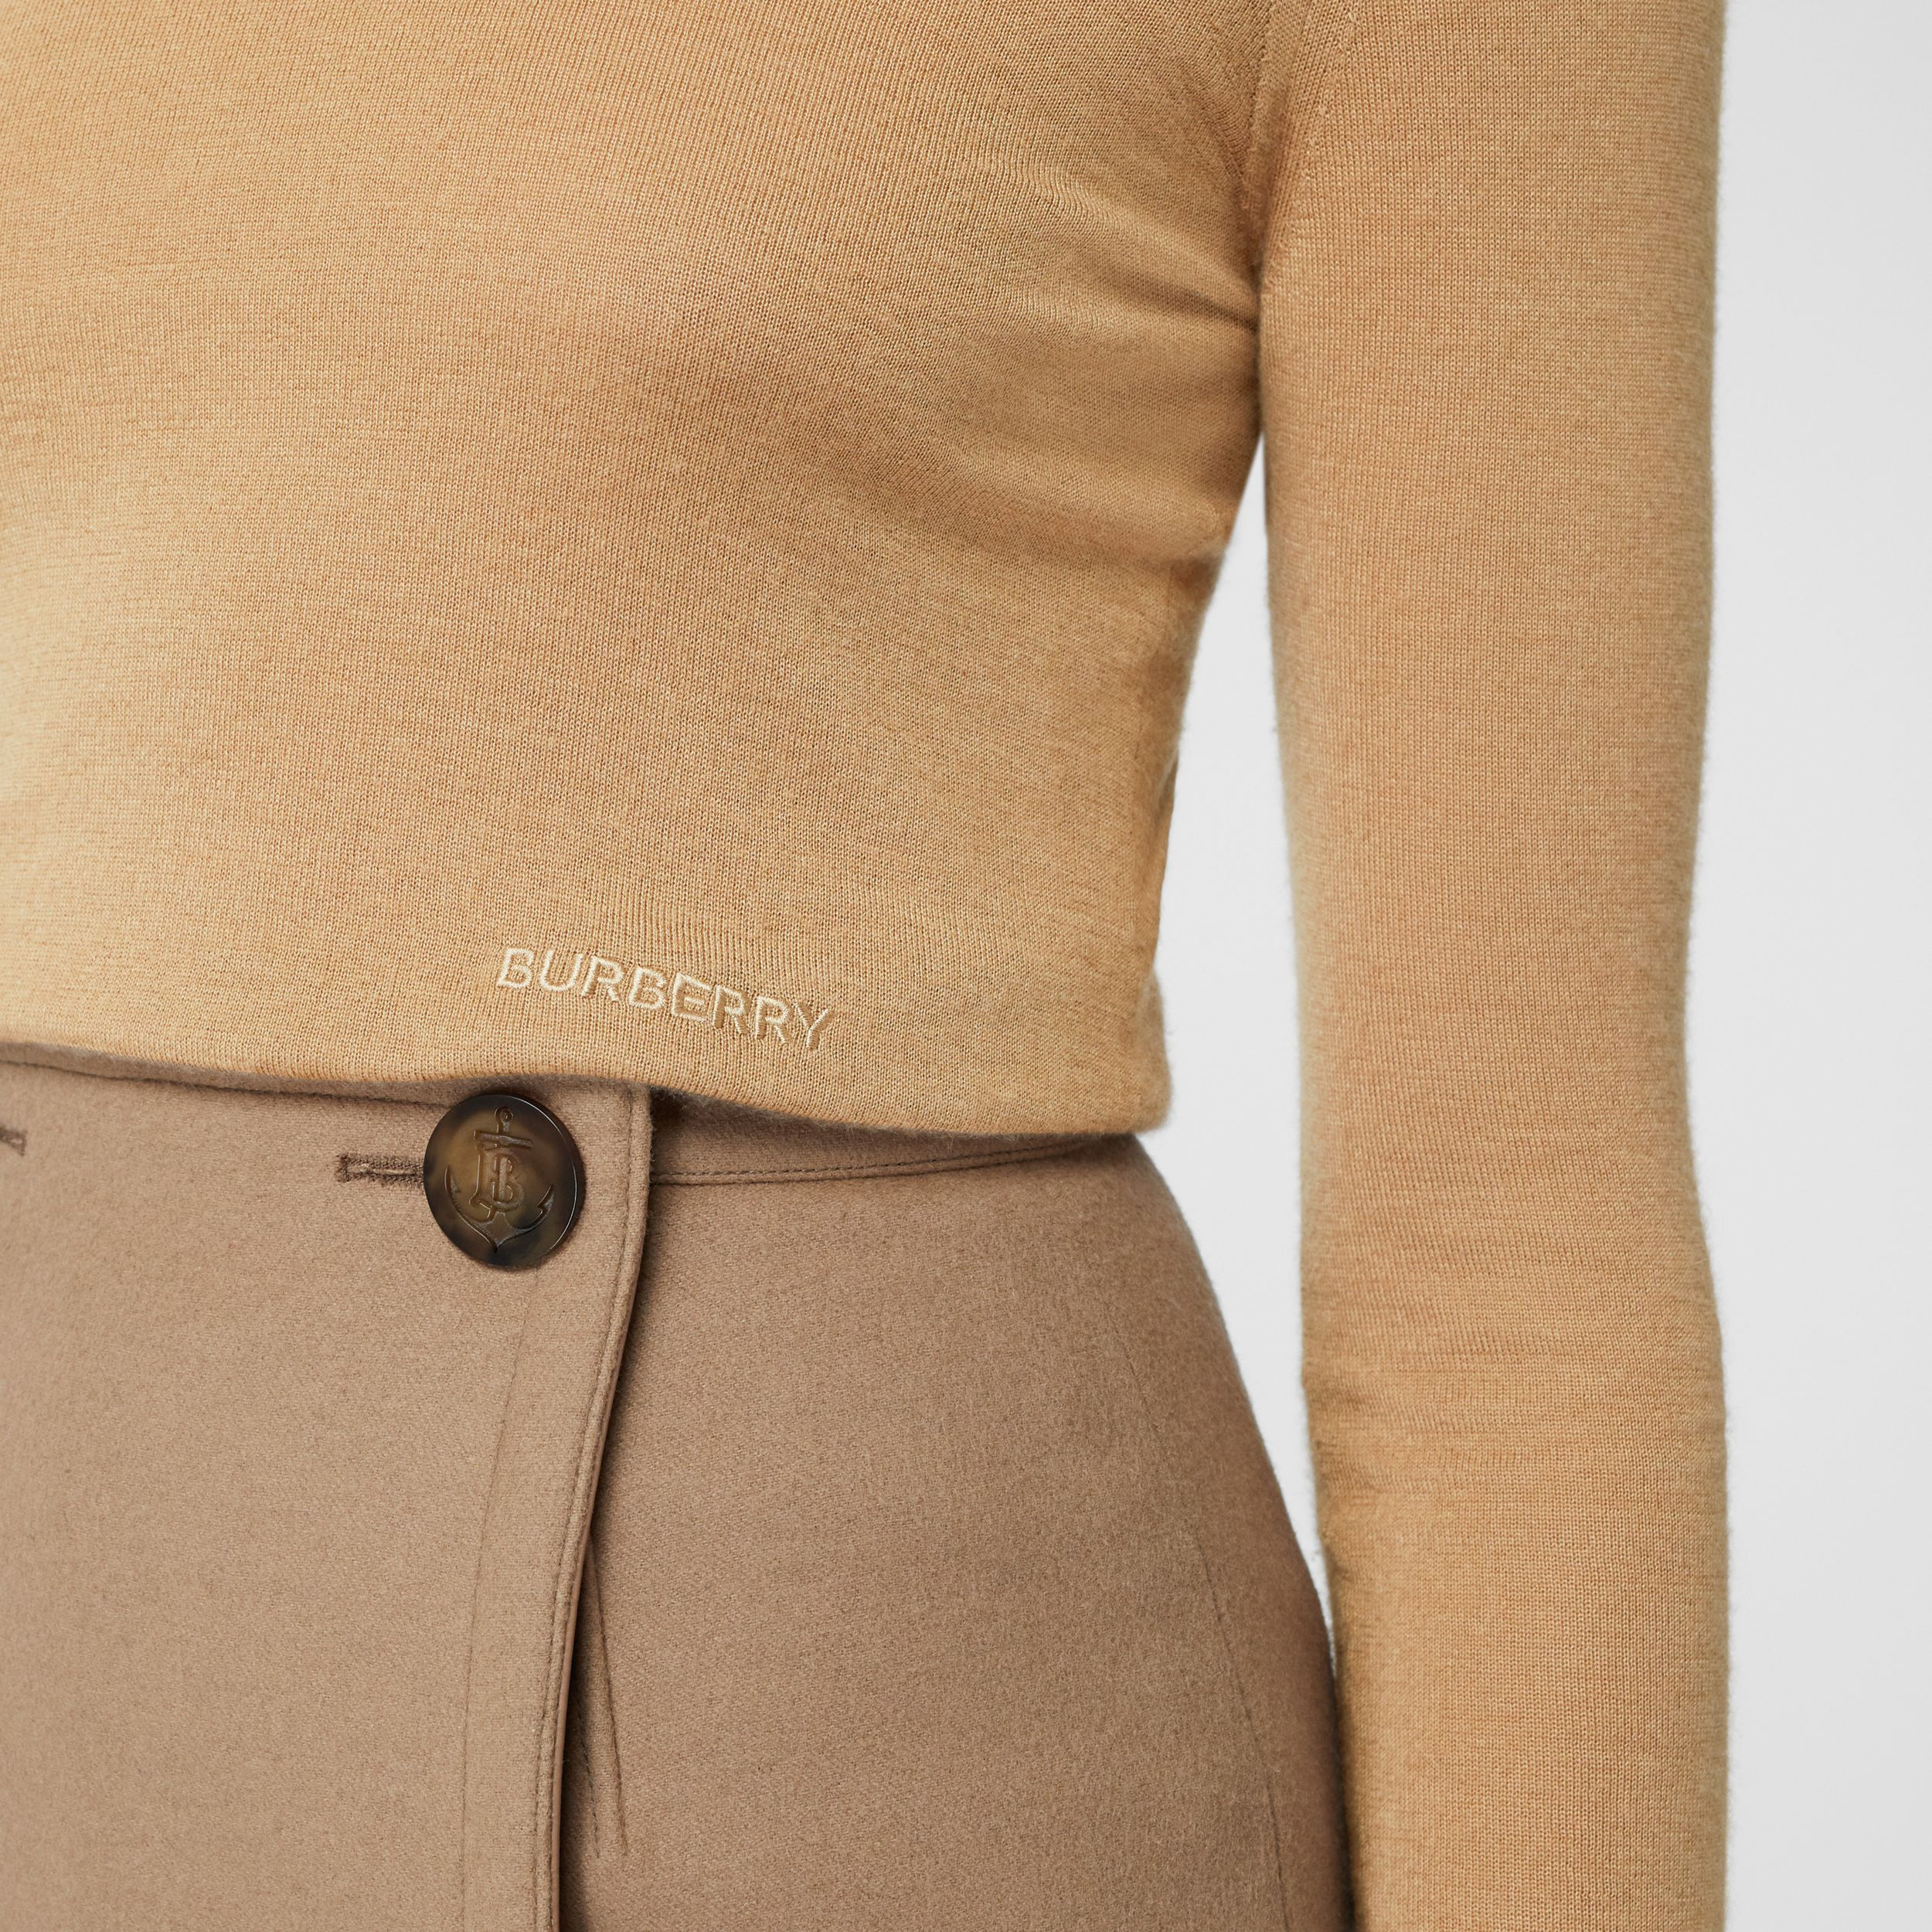 Embroidered Logo Cashmere Silk Roll-neck Sweater in Archive Beige - Women | Burberry United States - 2